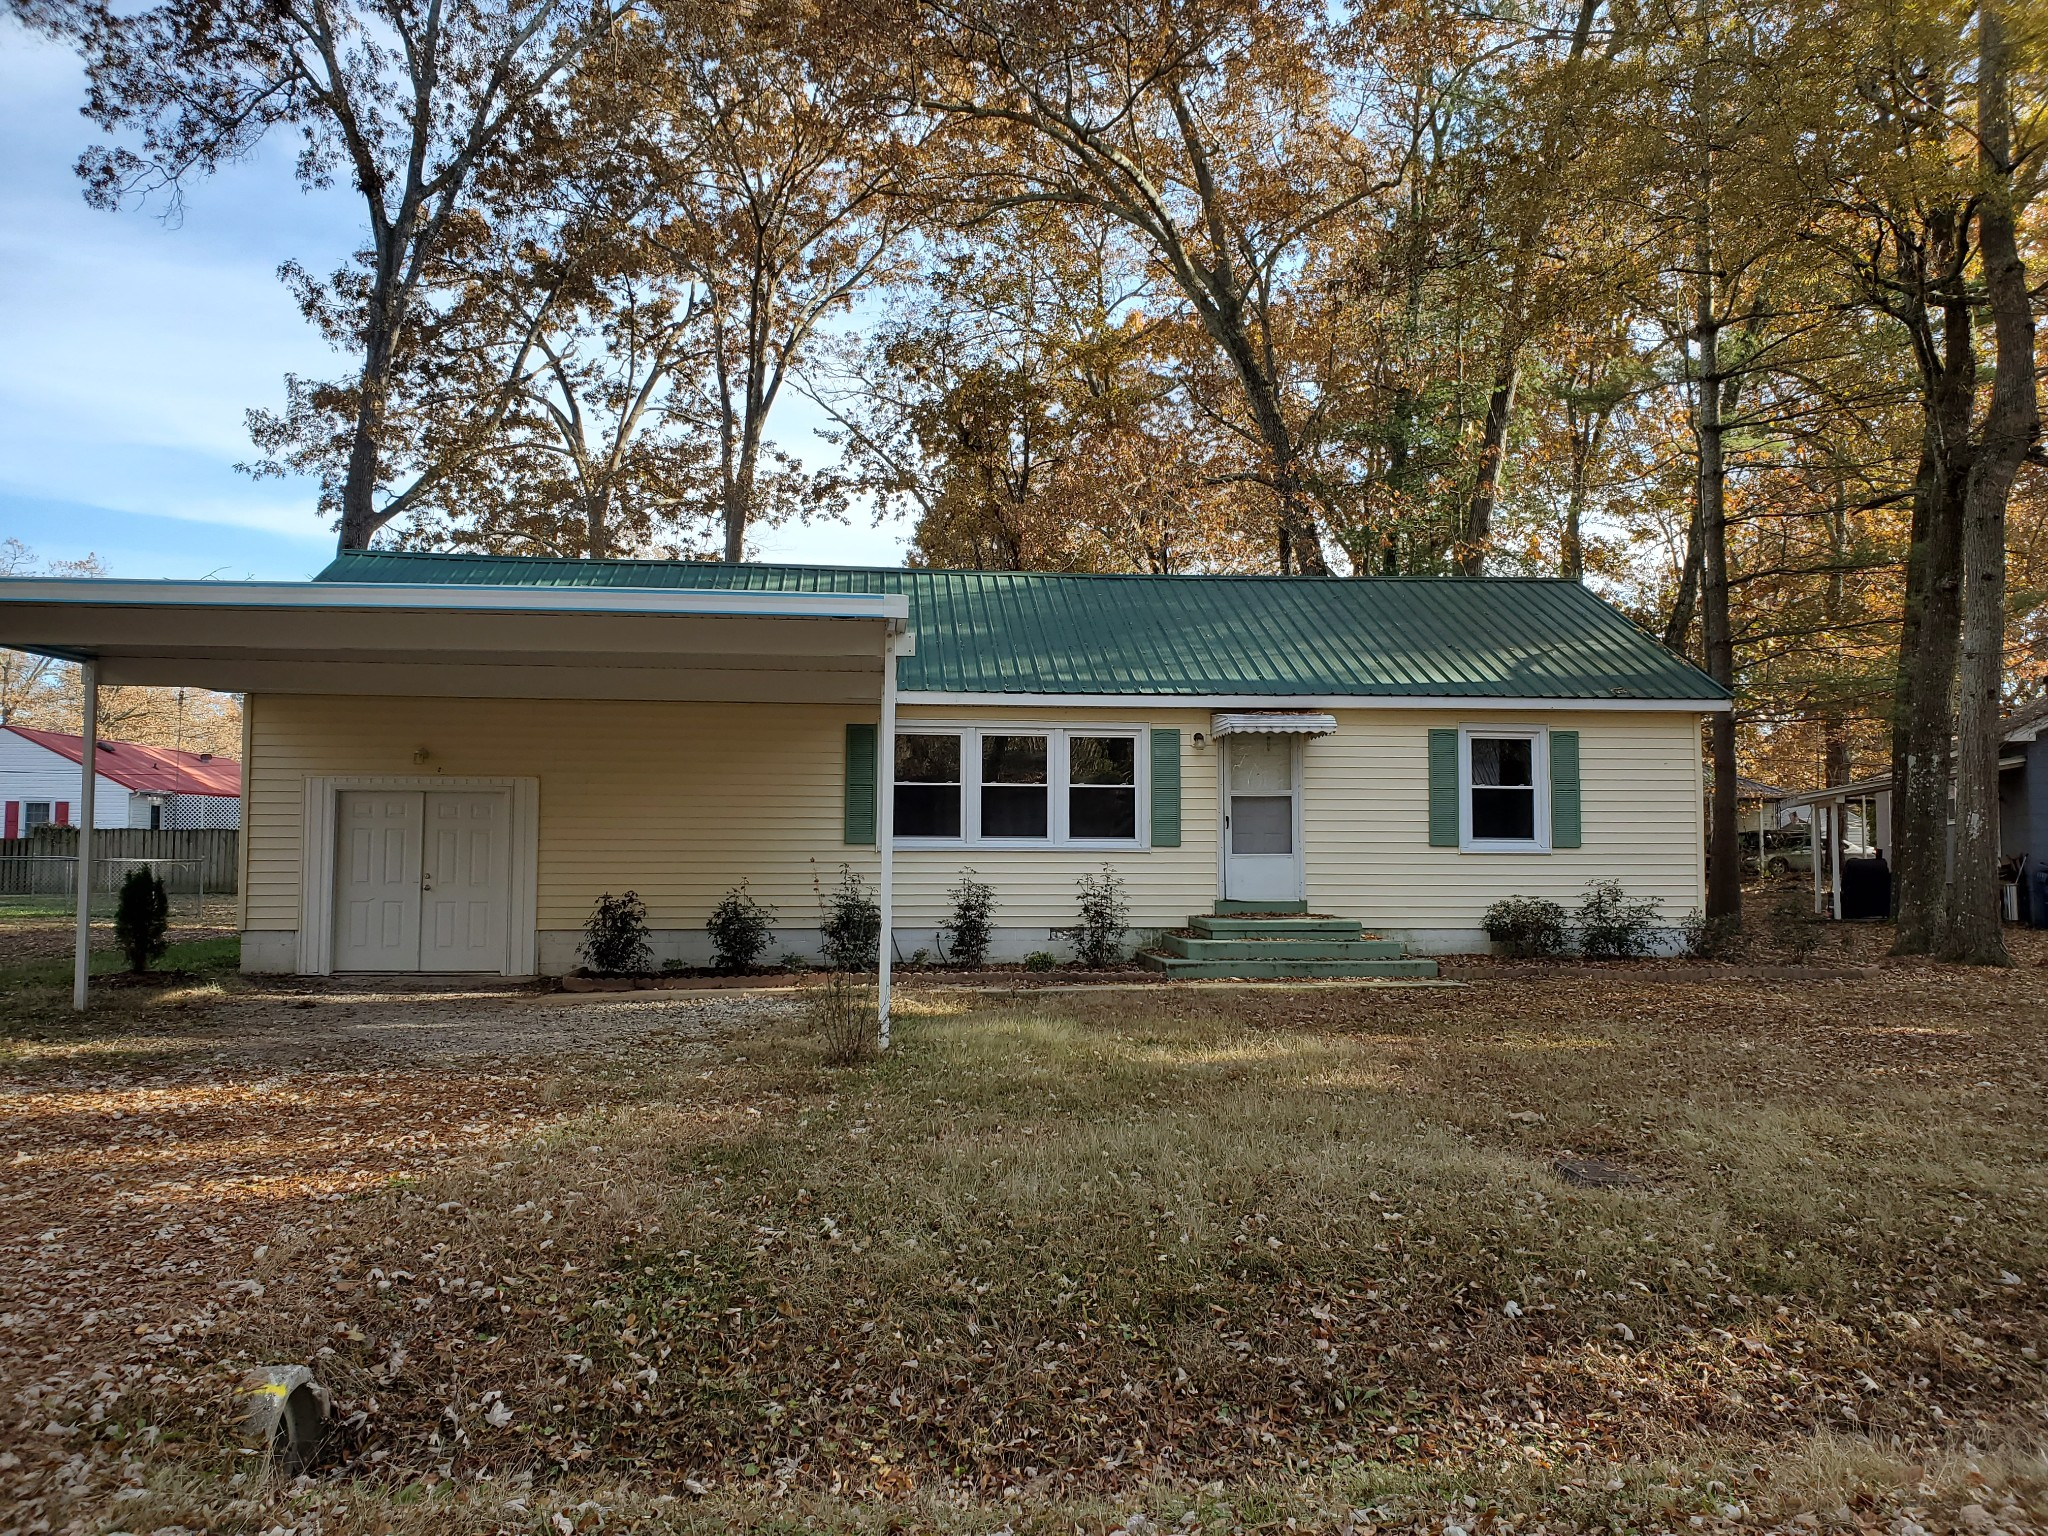 1003 Evins St, Manchester, TN 37355 - Manchester, TN real estate listing